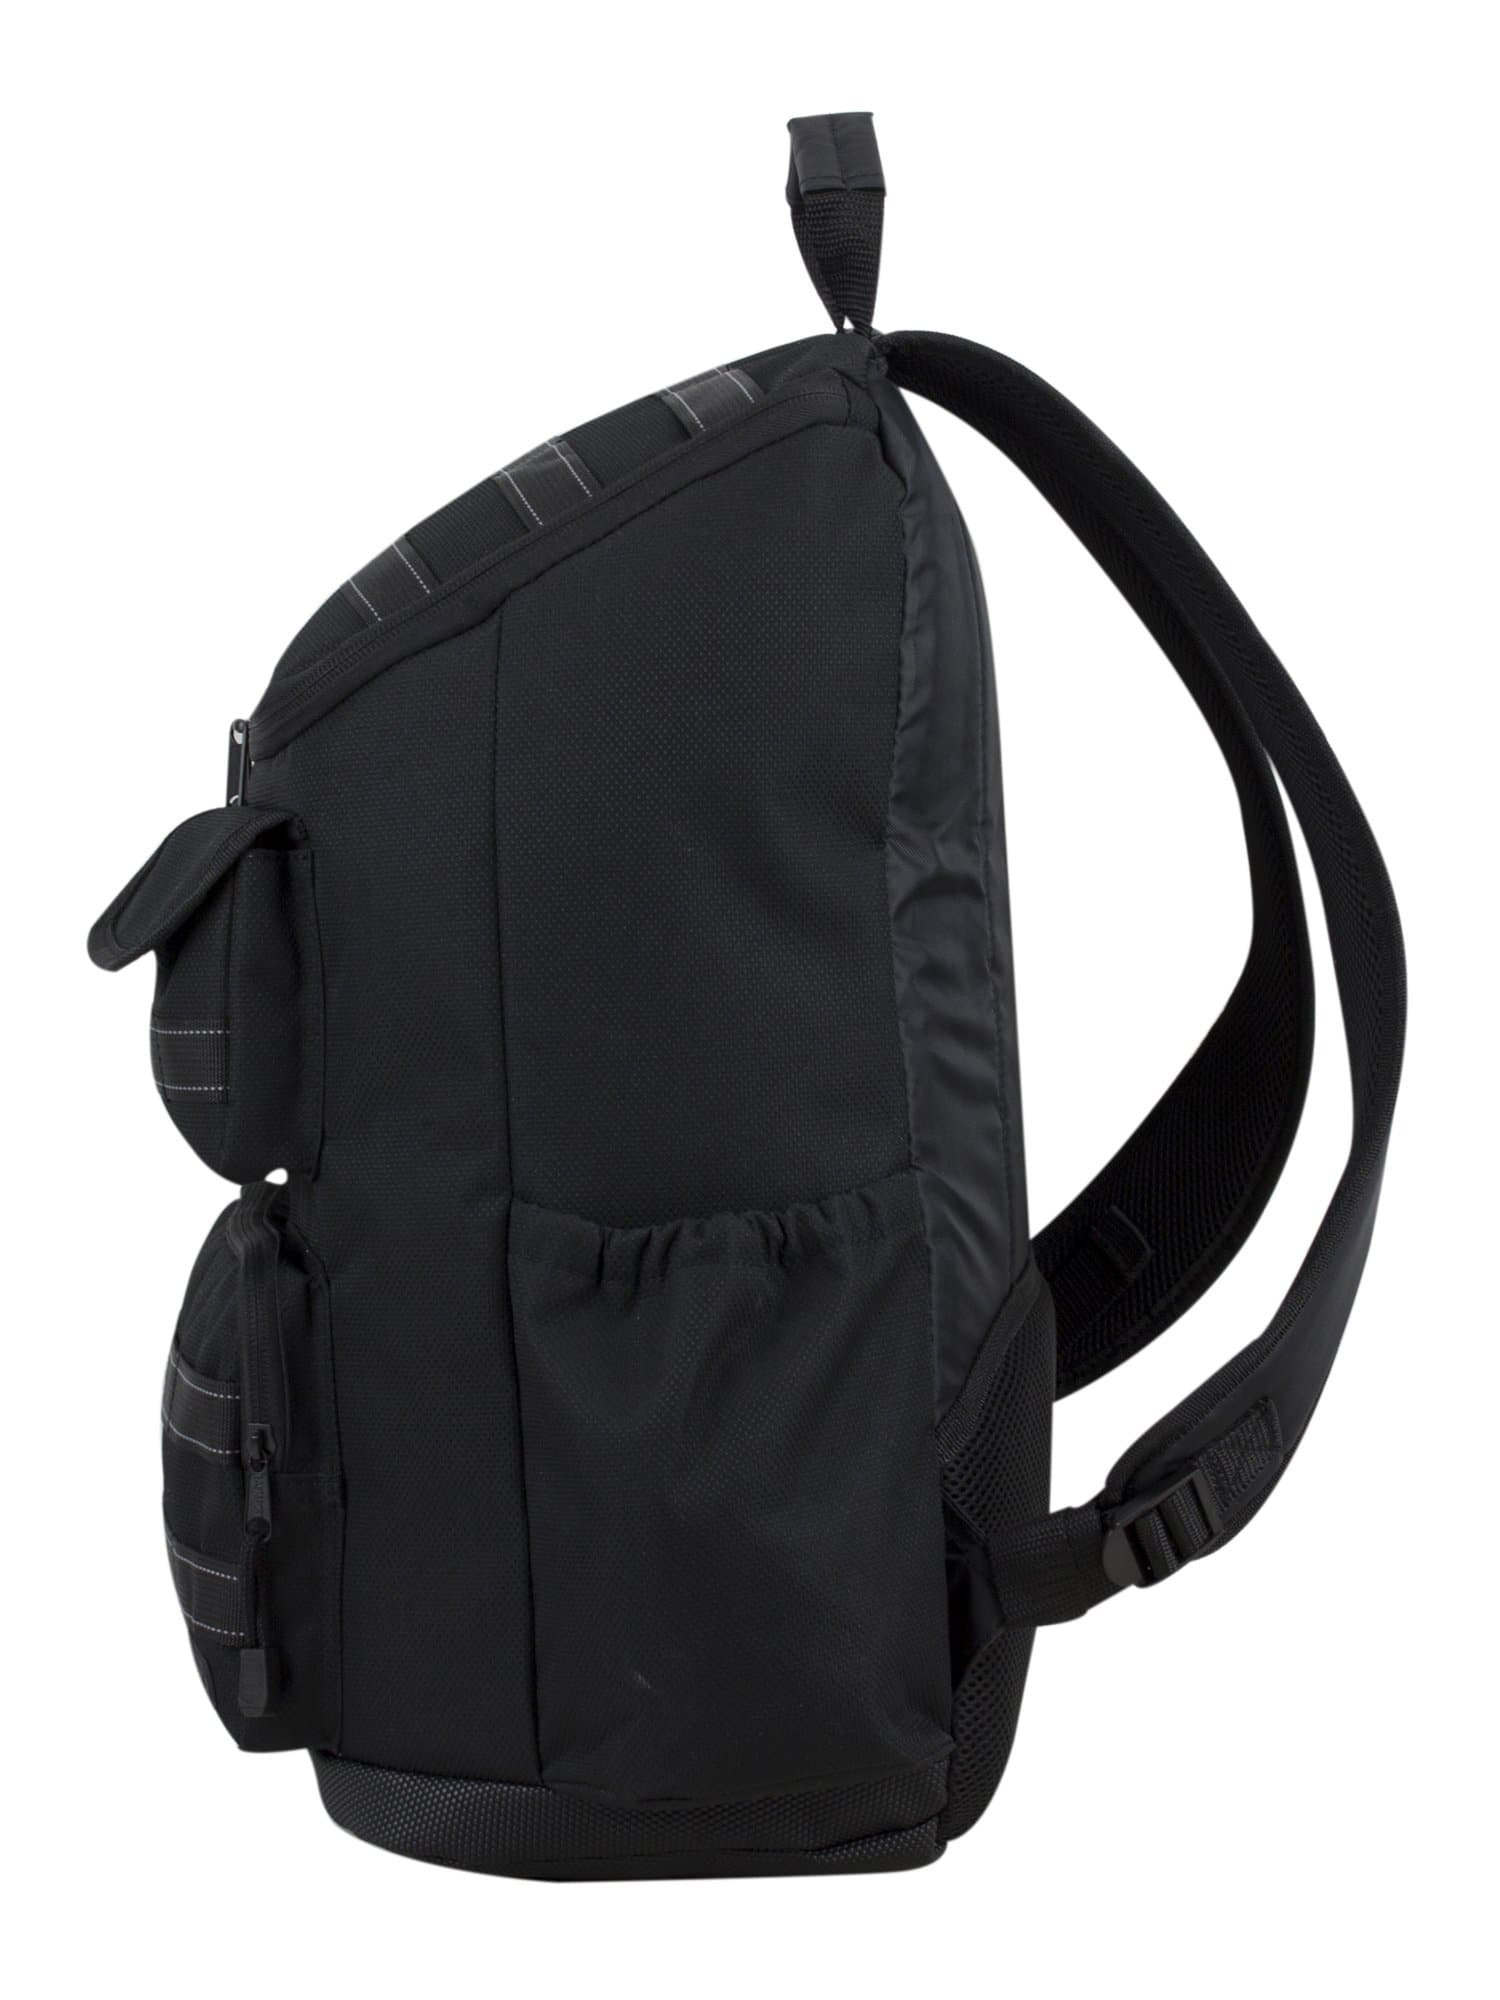 Spacious Deluxe Cargo Backpack - FLJ CORPORATIONS